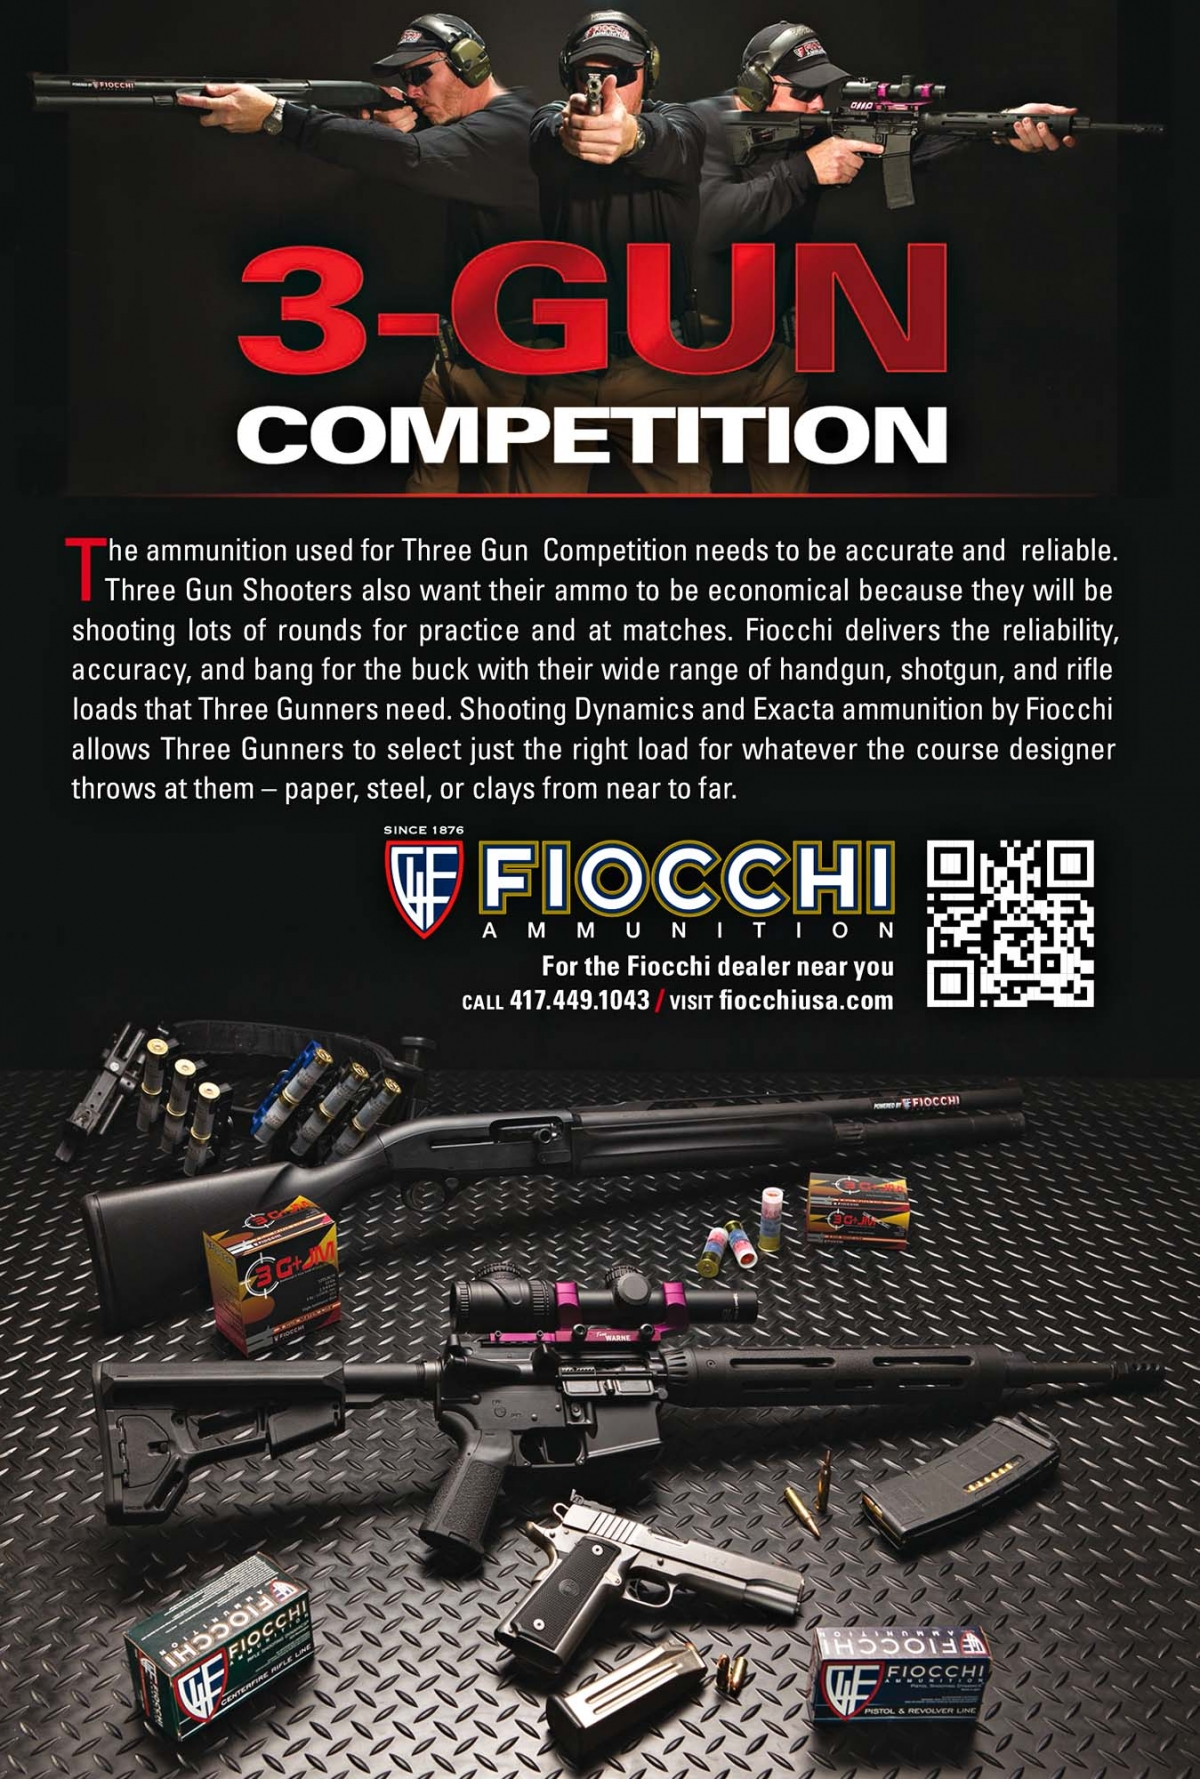 Fiocchi 3G+JM ammunition for Tri-Gun Competition shooters